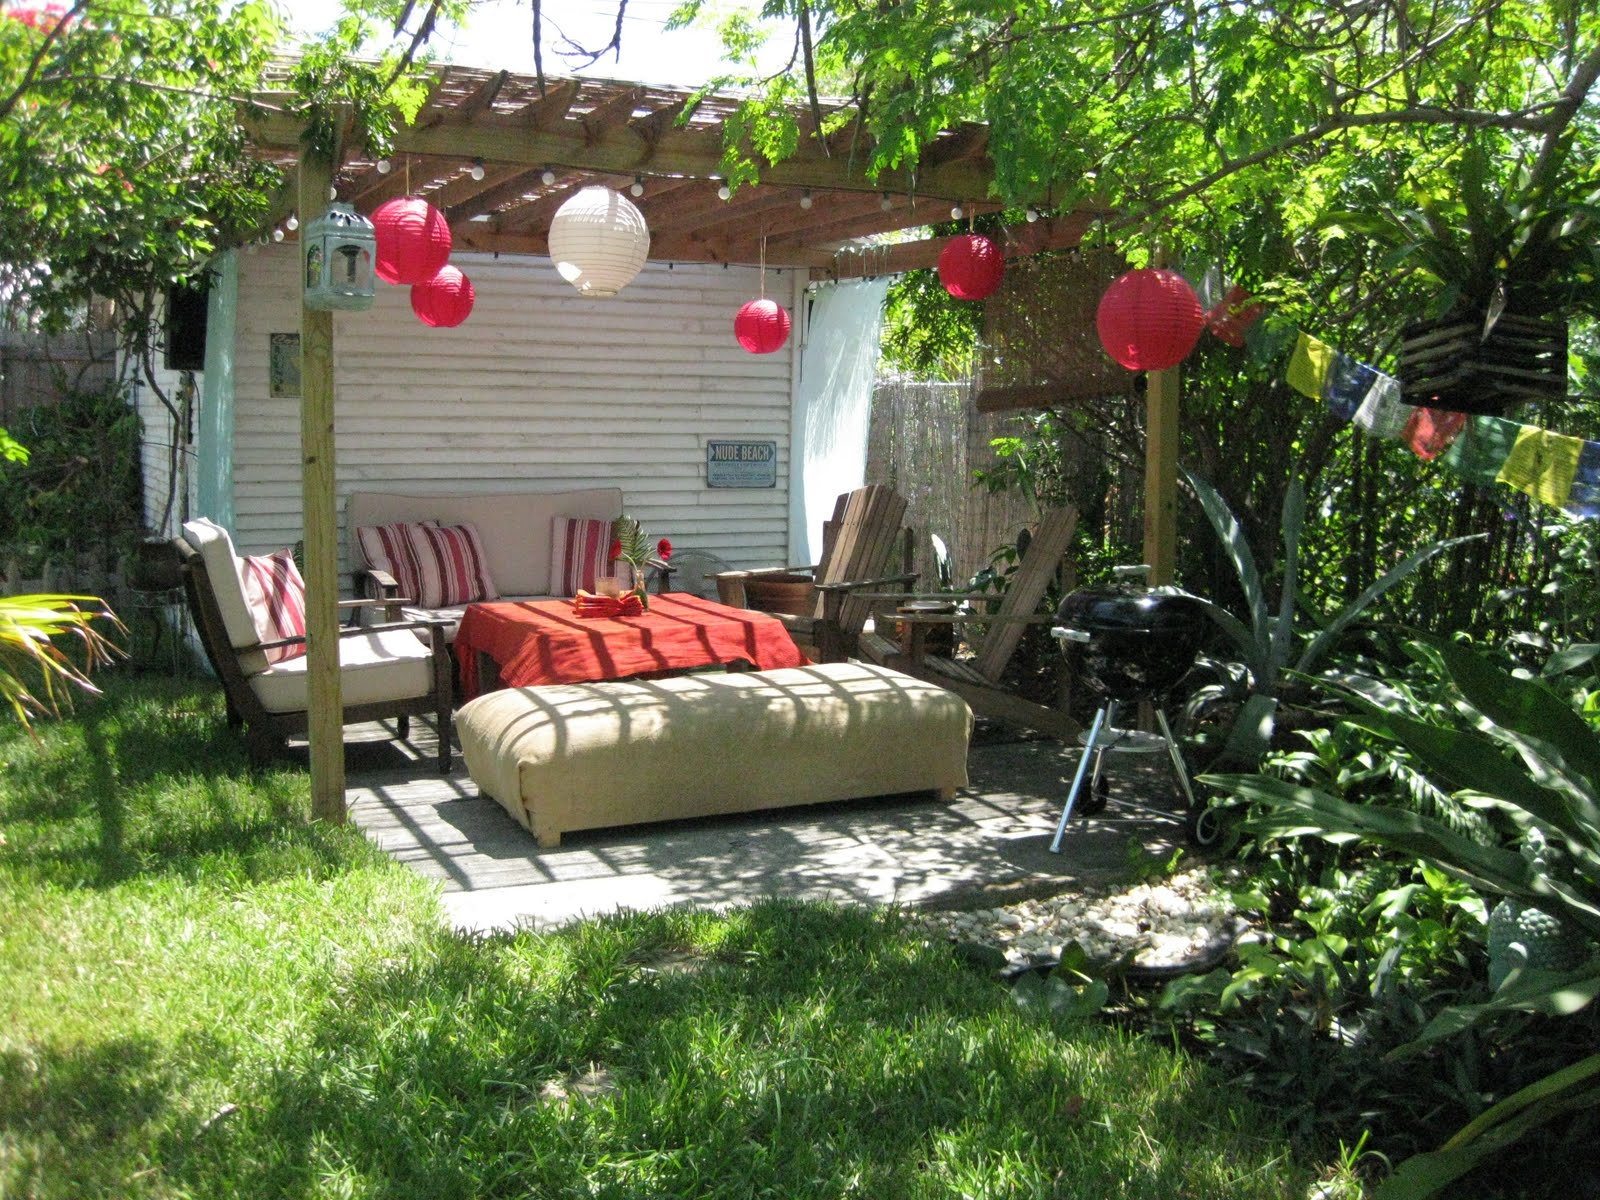 Dinner party a backyard barbeque for Backyard party decoration ideas